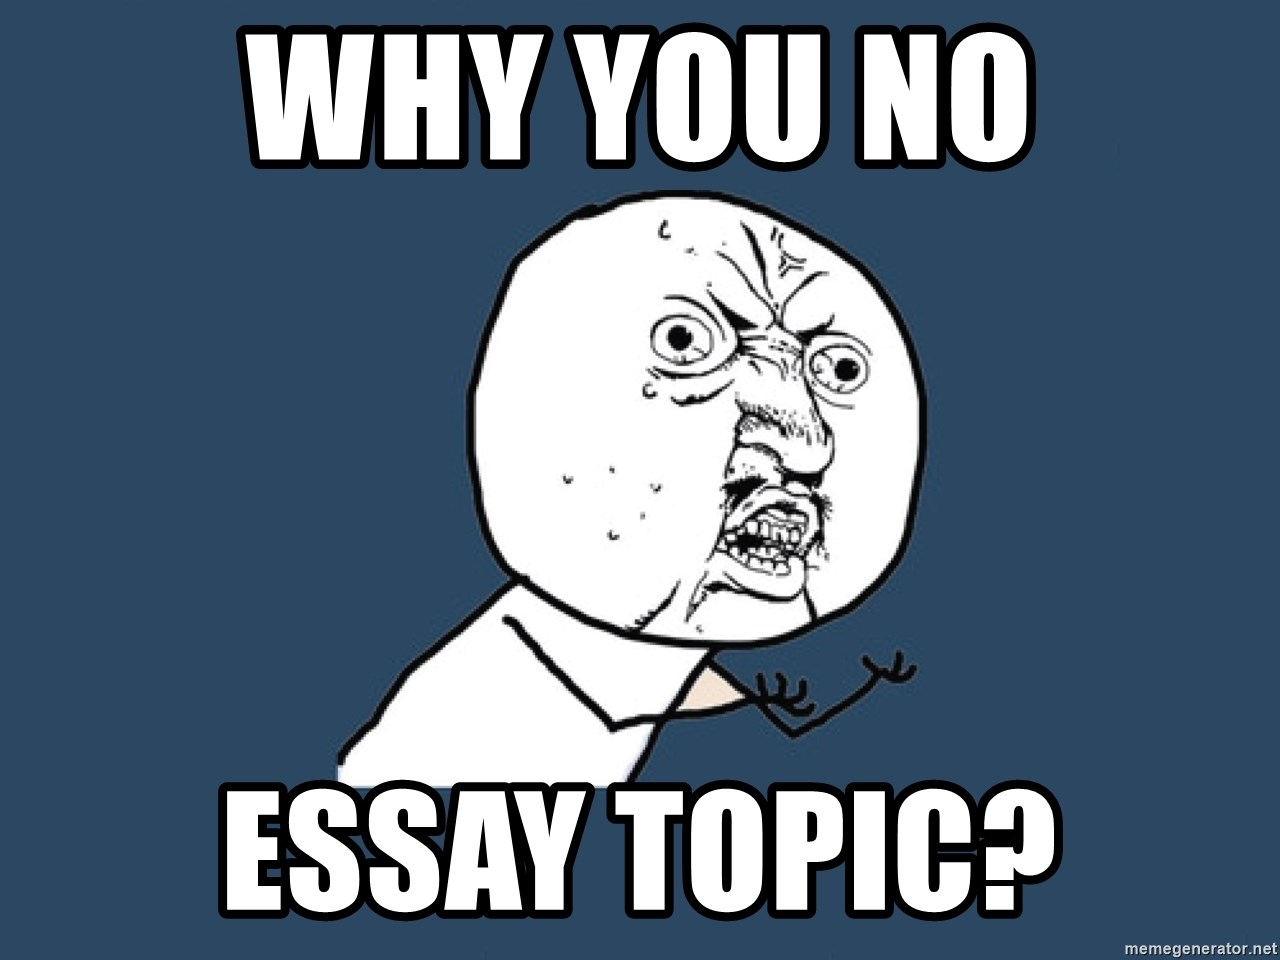 Y U No - Why You NO ESSAY TOPIC?